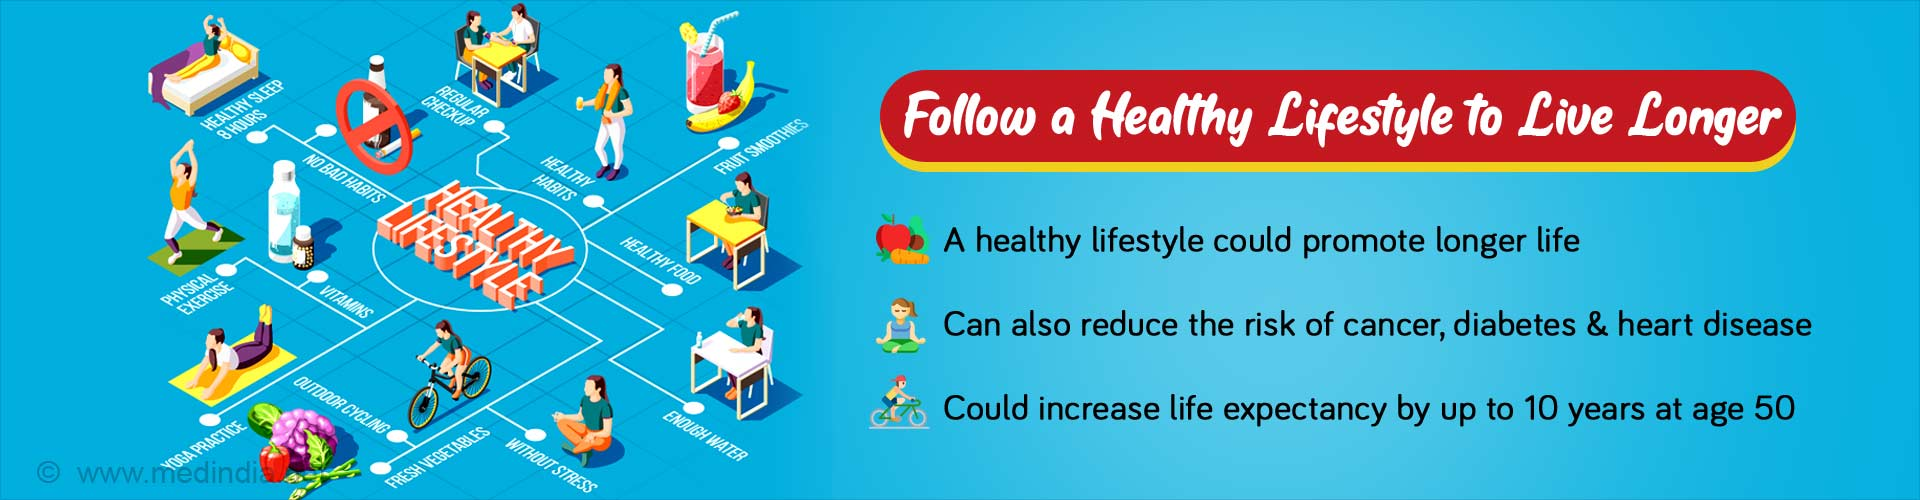 Healthy Lifestyle Increases Life Expectancy